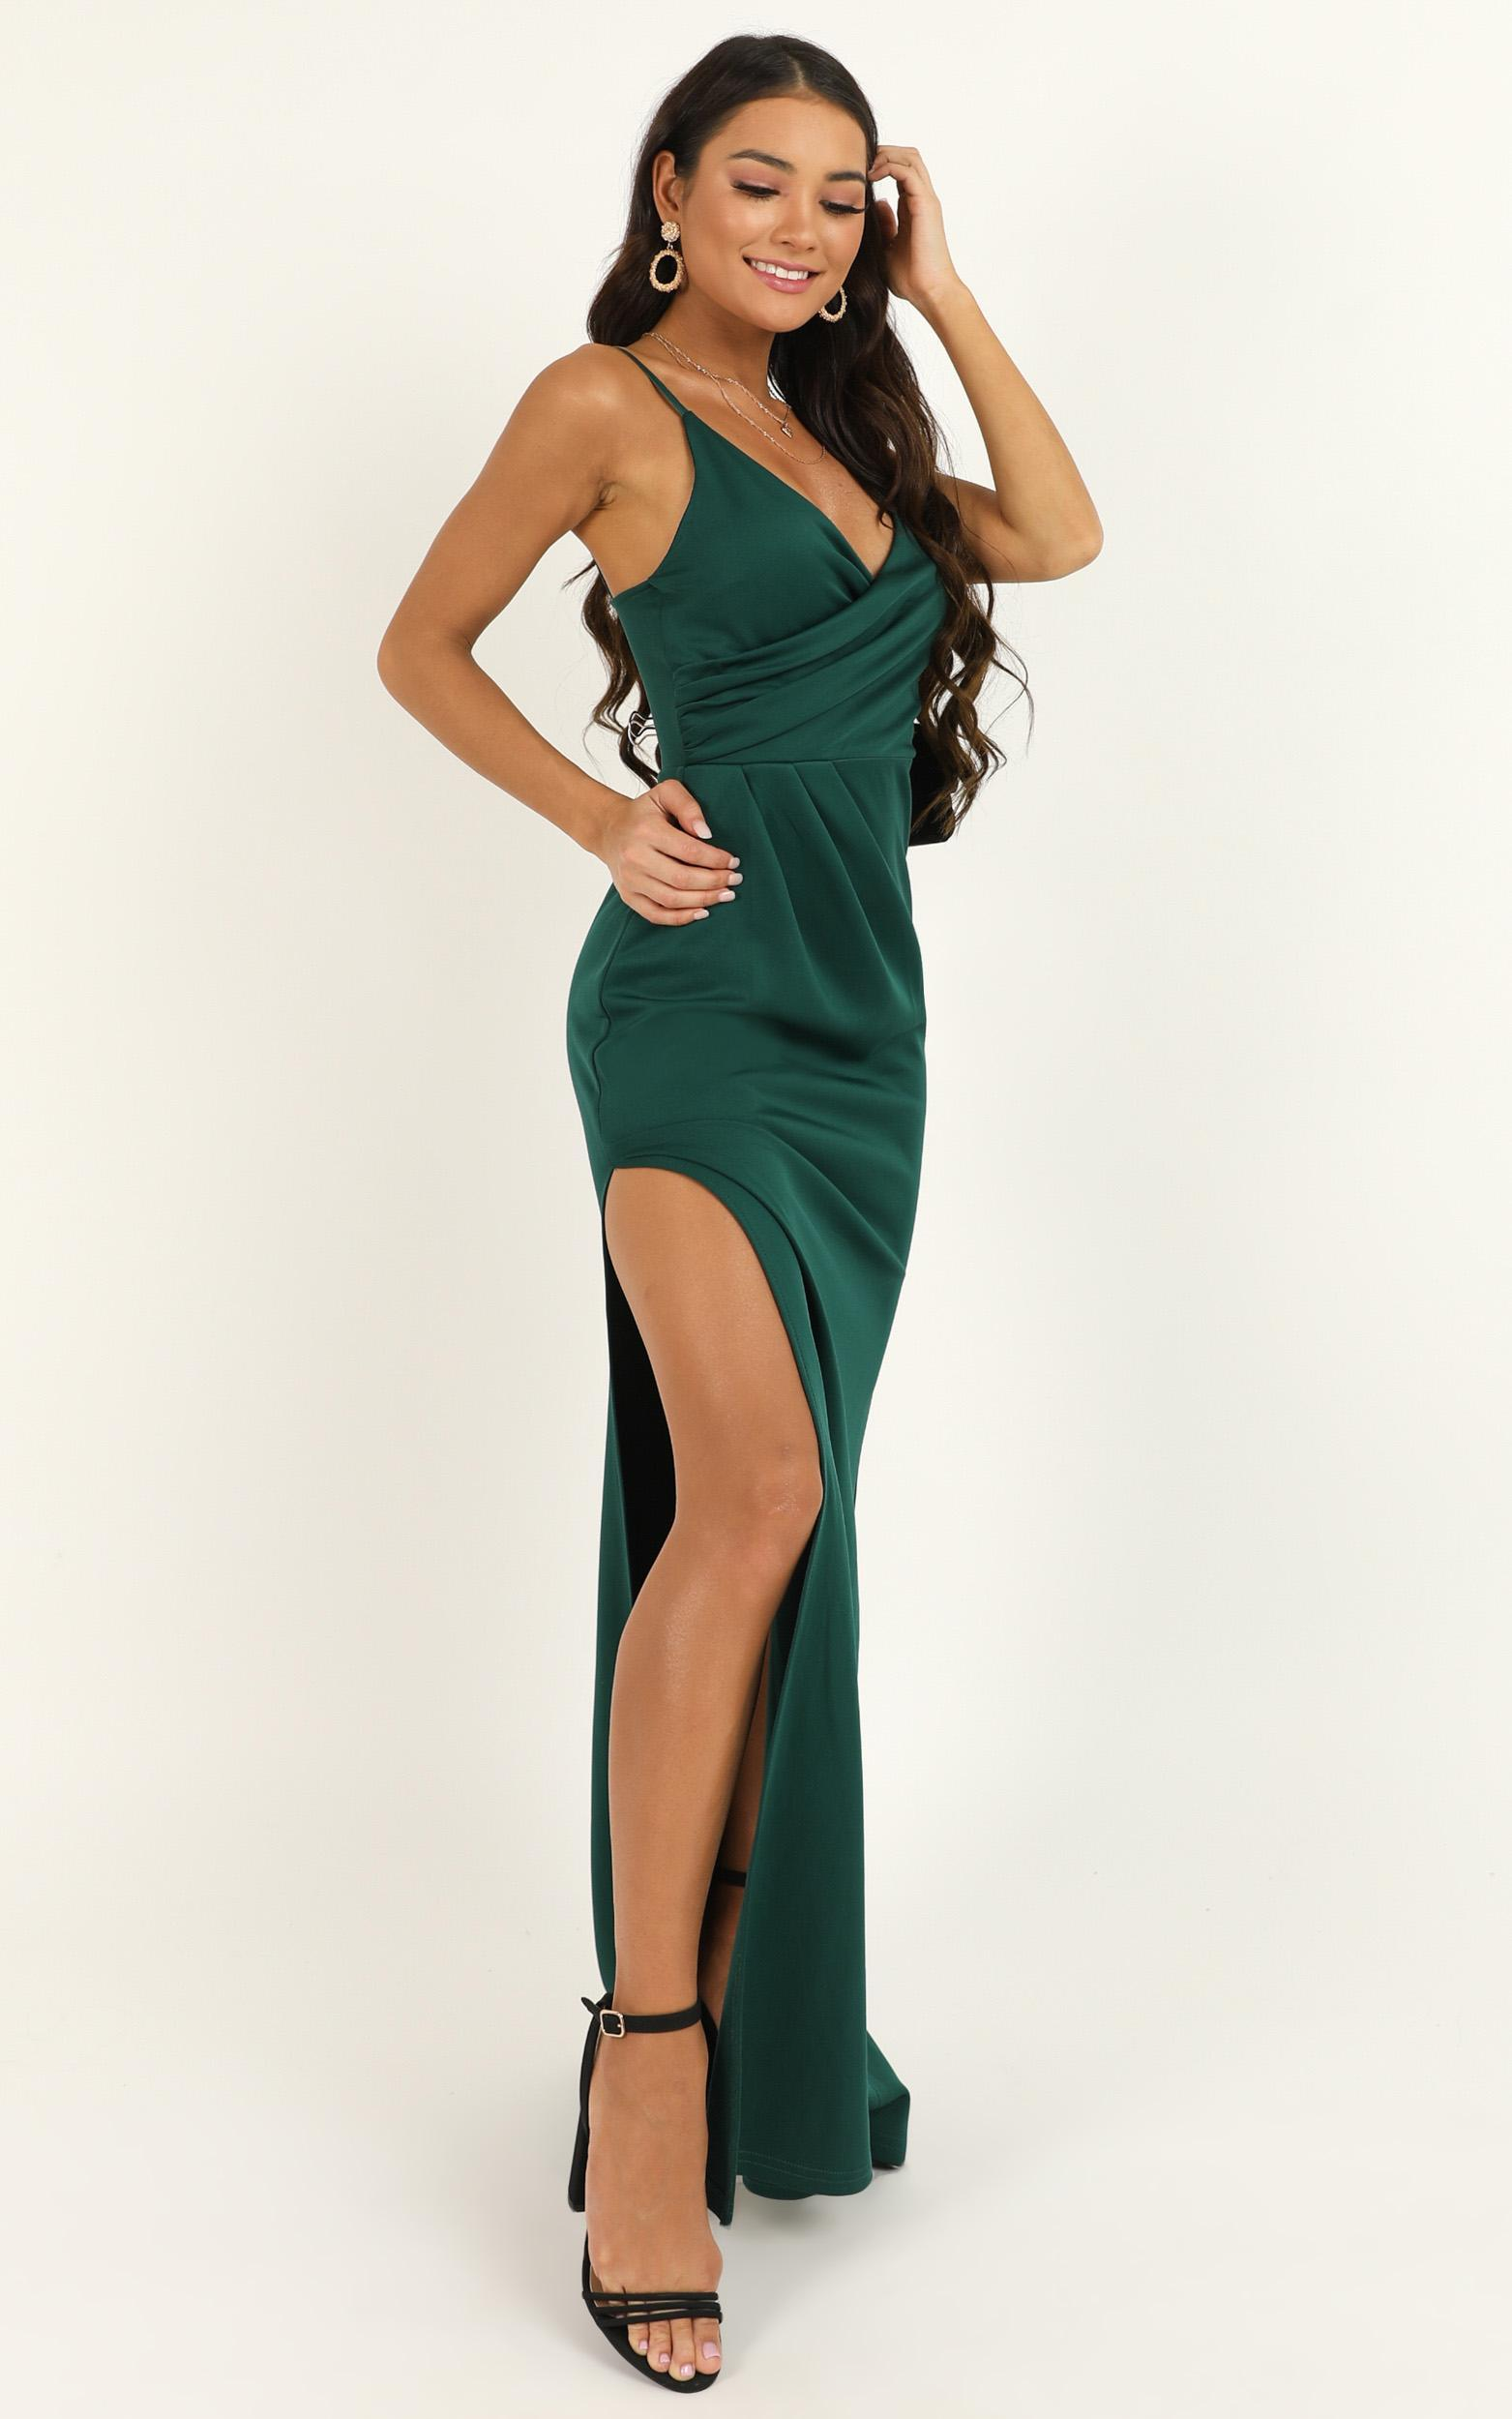 Linking Love Maxi Dress in emerald - 20 (XXXXL), Green, hi-res image number null